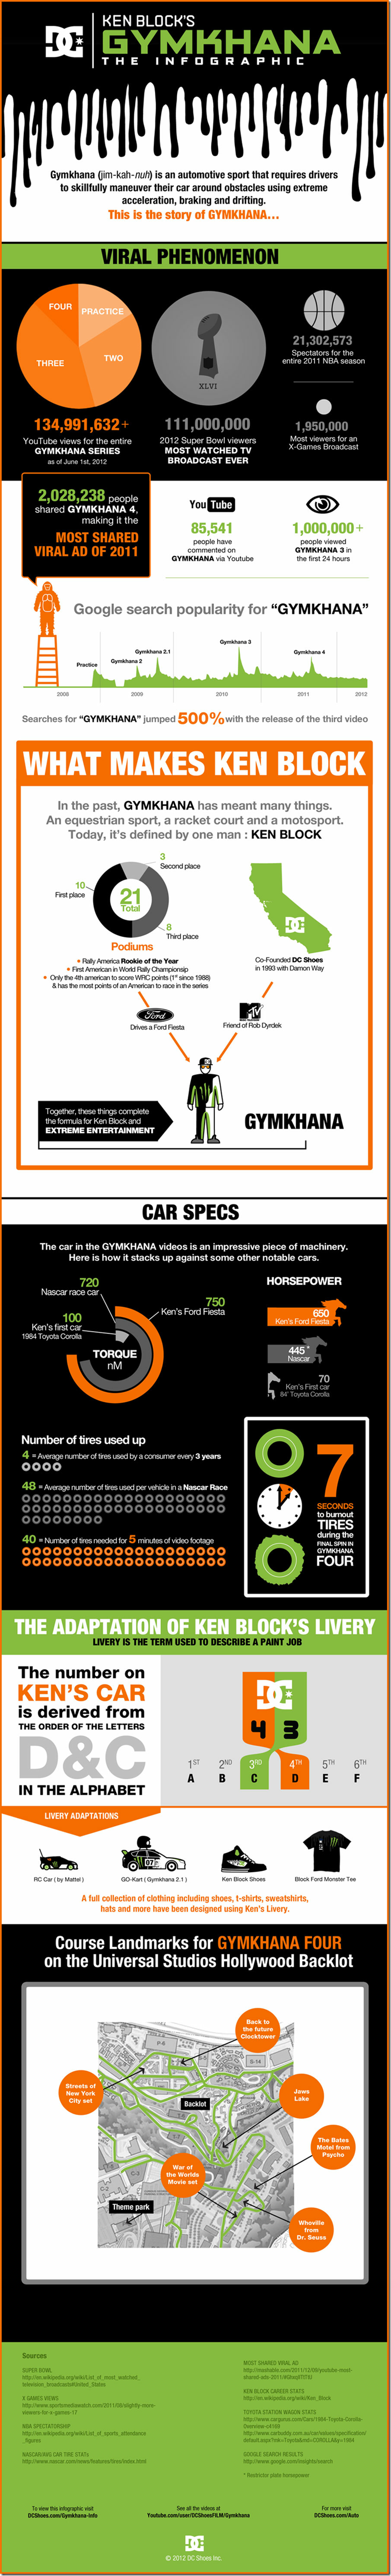 dc-shoes-gymkhana-infographic-880